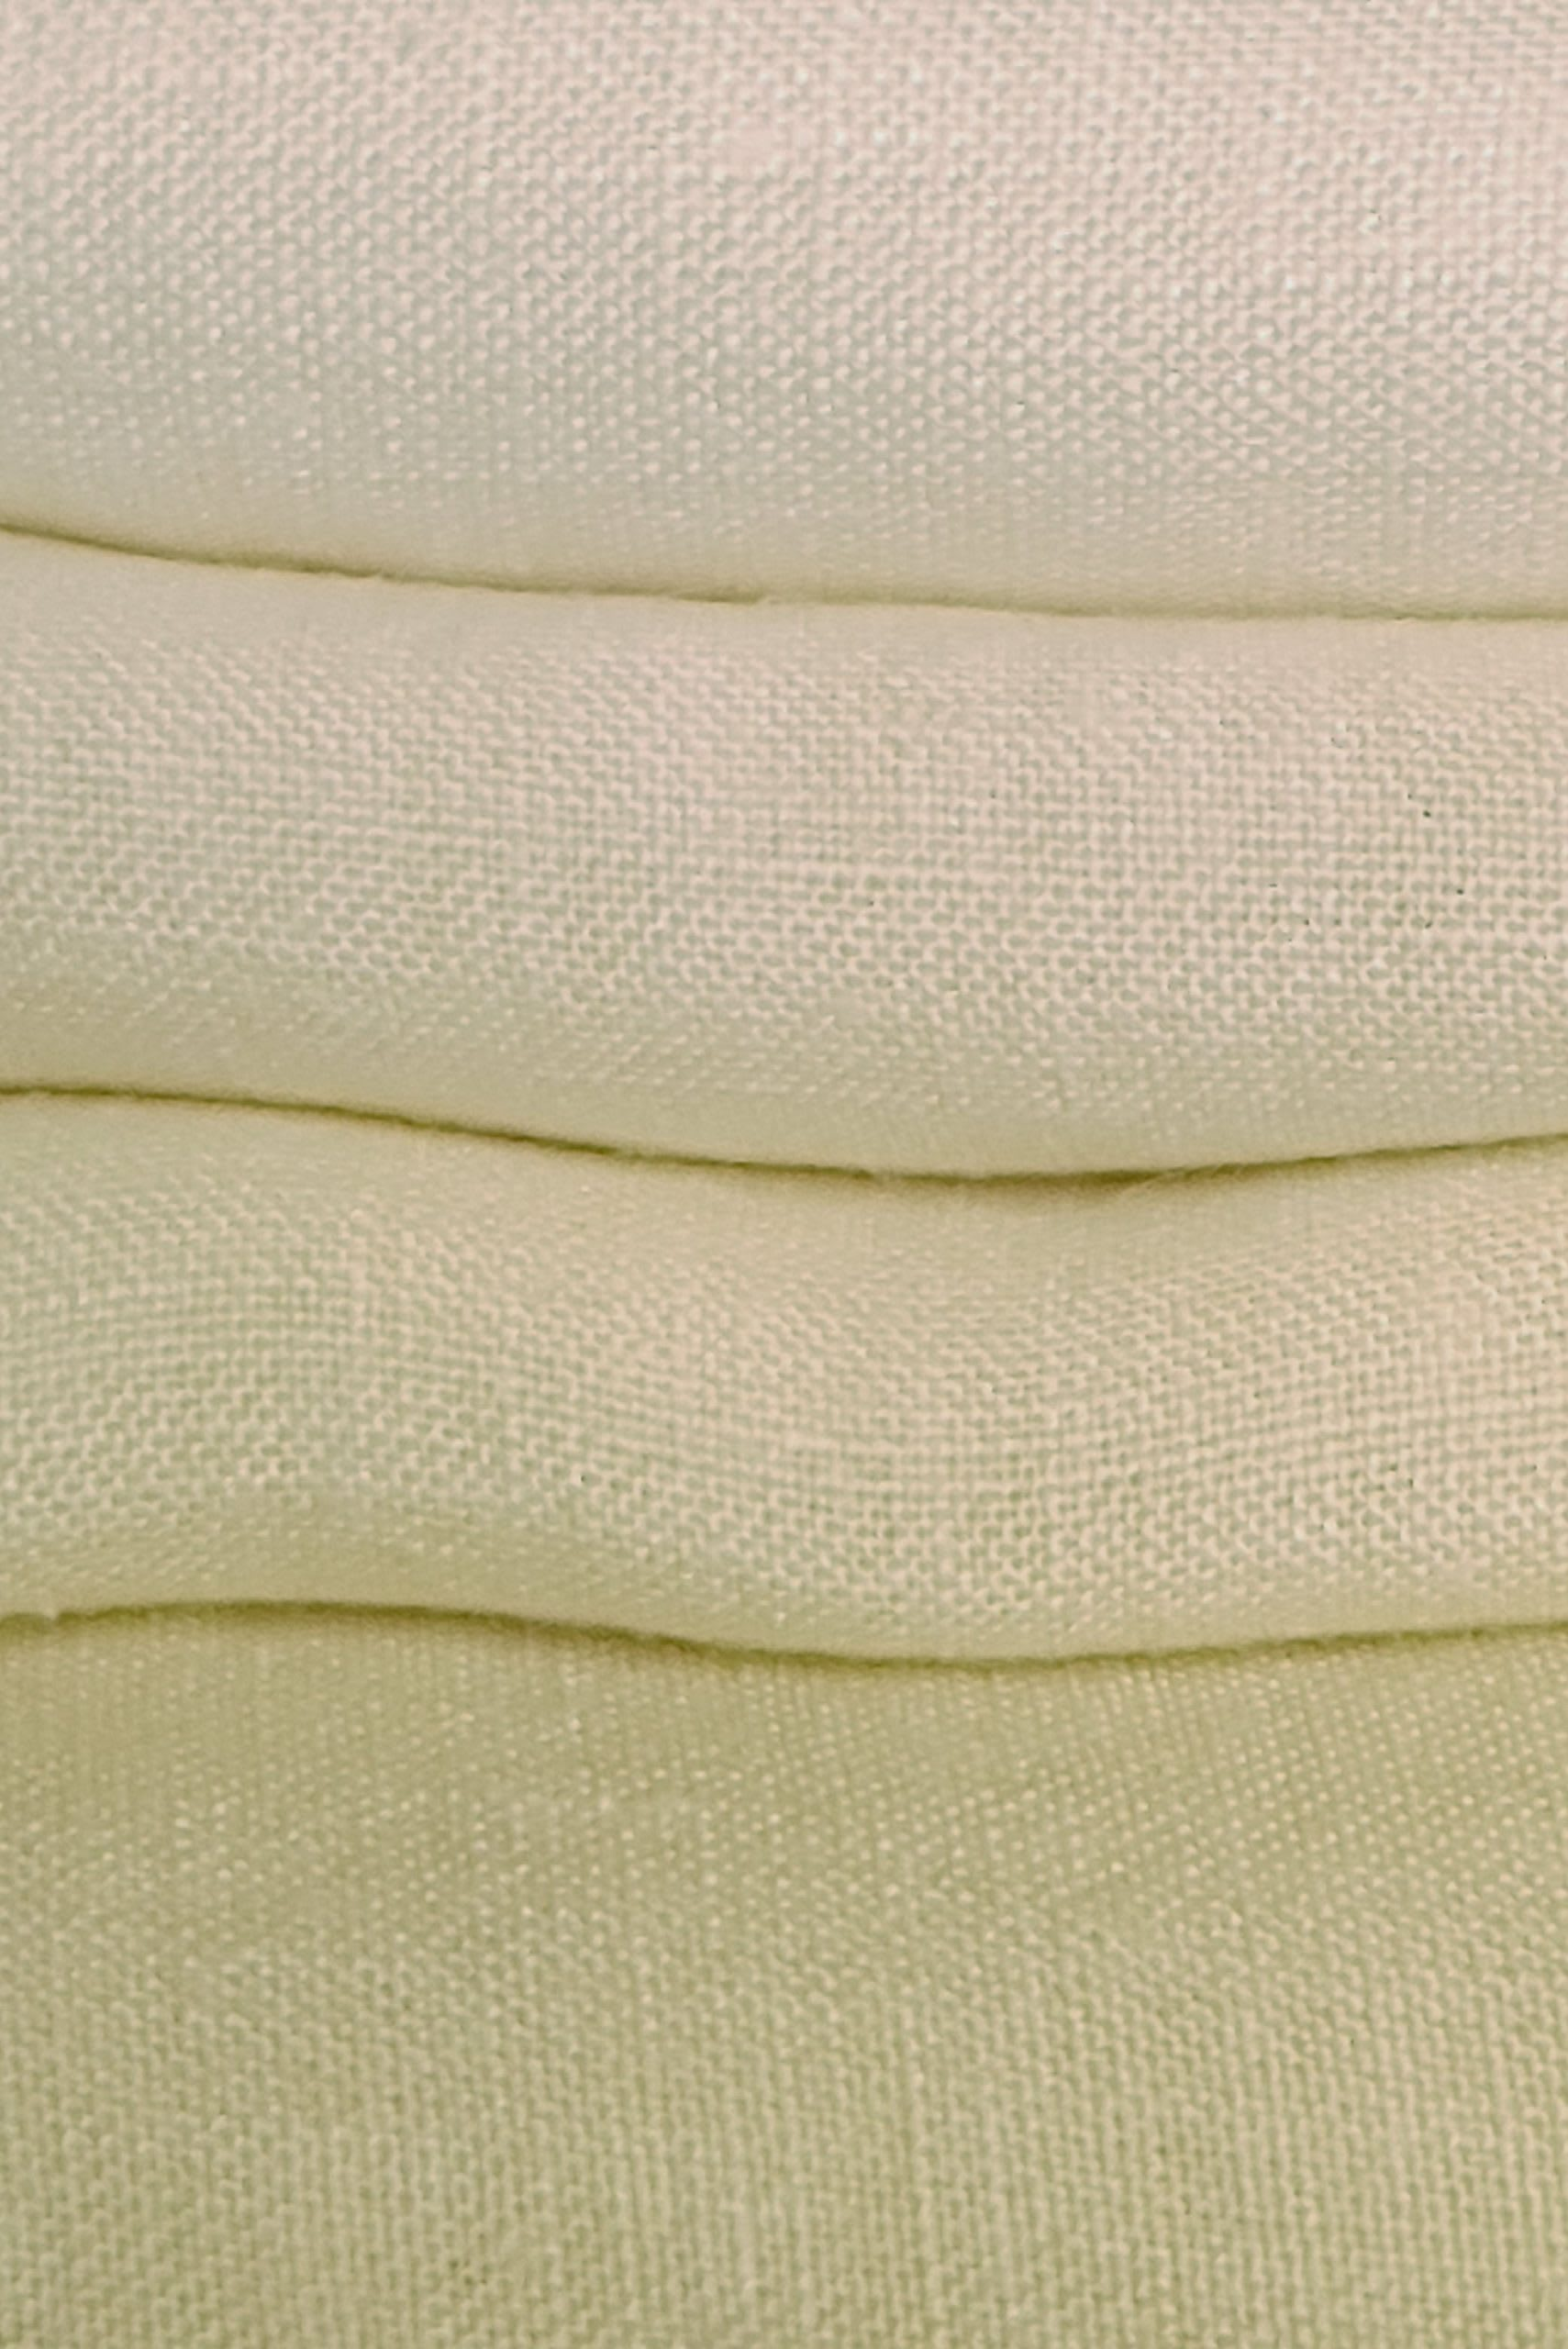 detail of linen hand dyed Dylon sandy beige